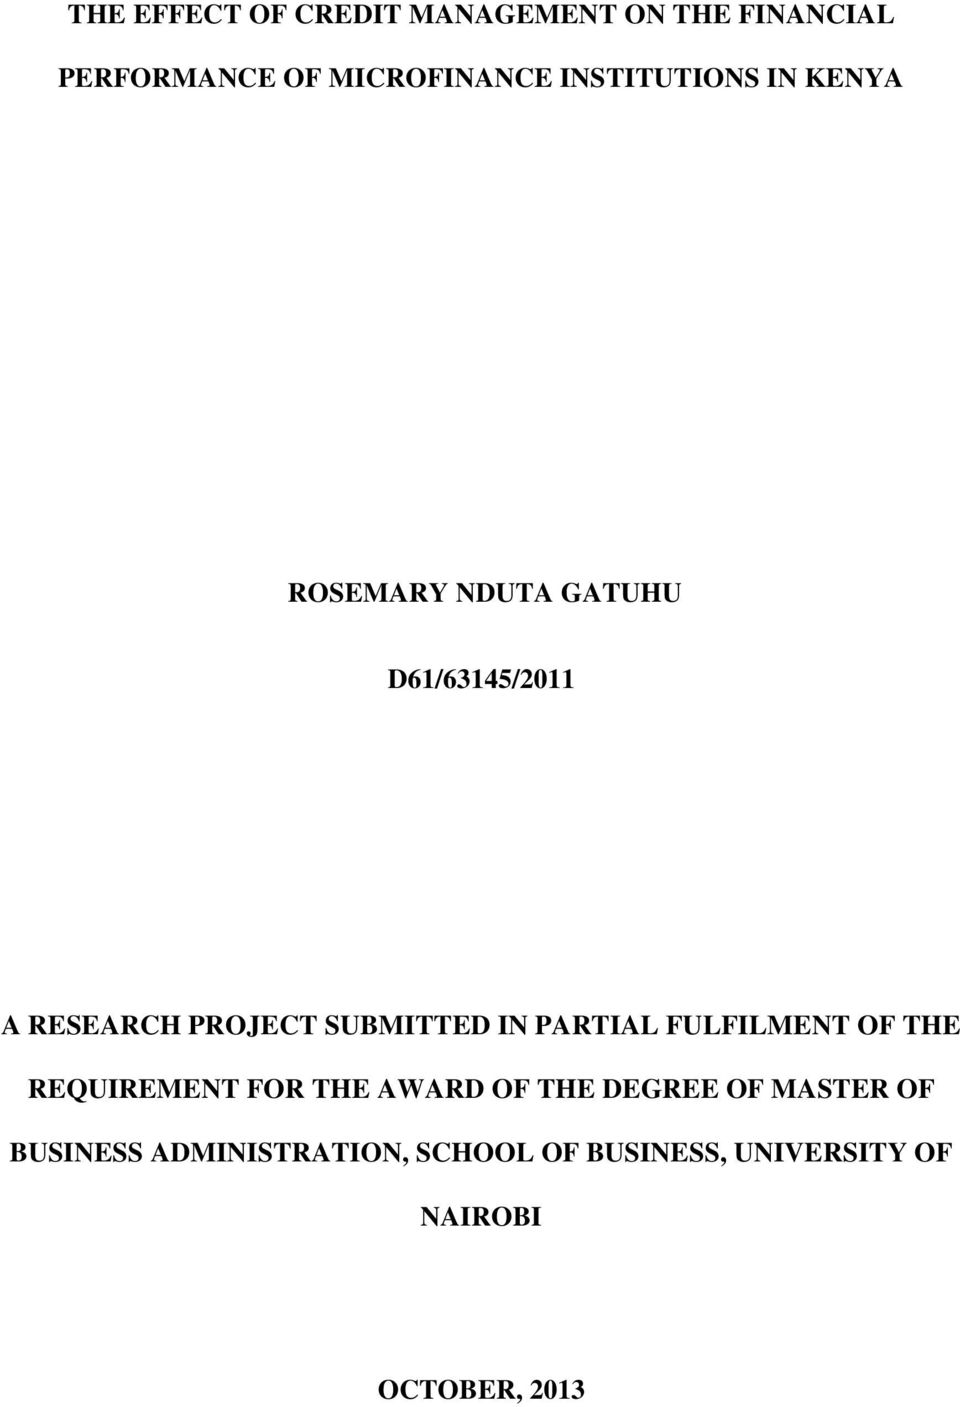 SUBMITTED IN PARTIAL FULFILMENT OF THE REQUIREMENT FOR THE AWARD OF THE DEGREE OF